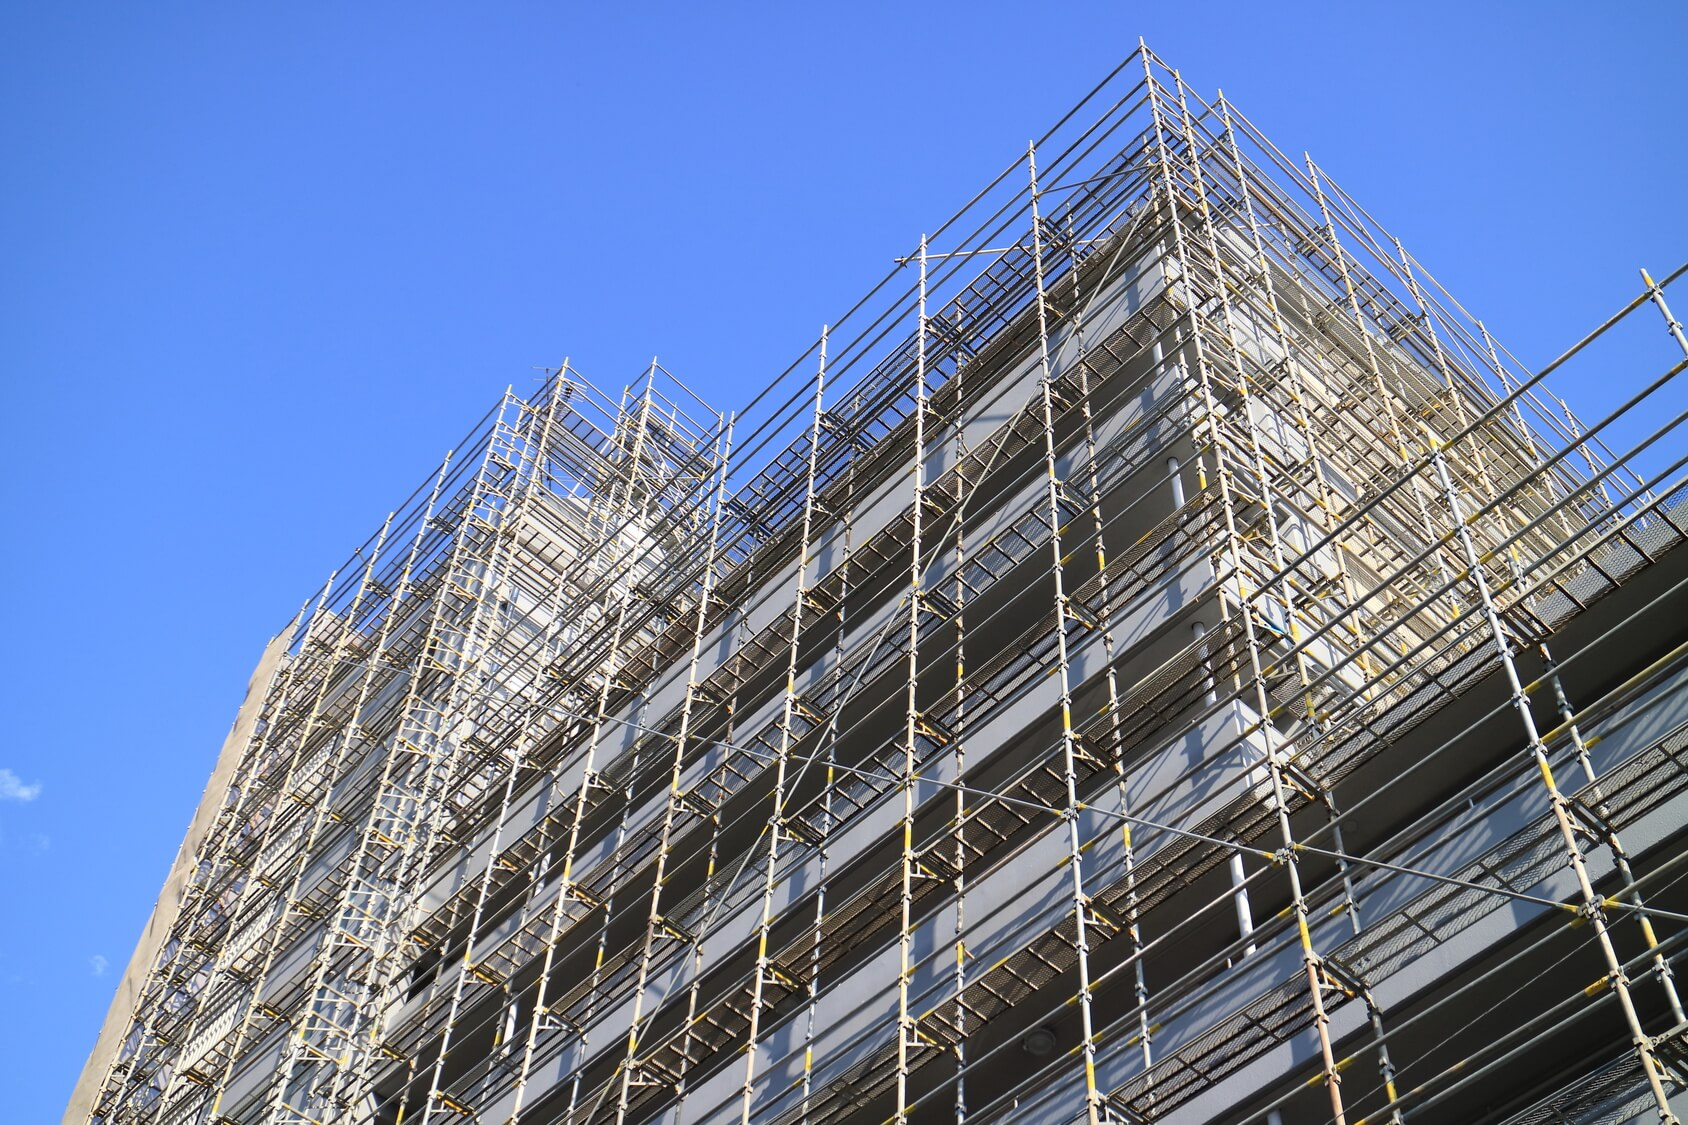 Different Types Of Scaffolding : Types of scaffolding singapore value for money